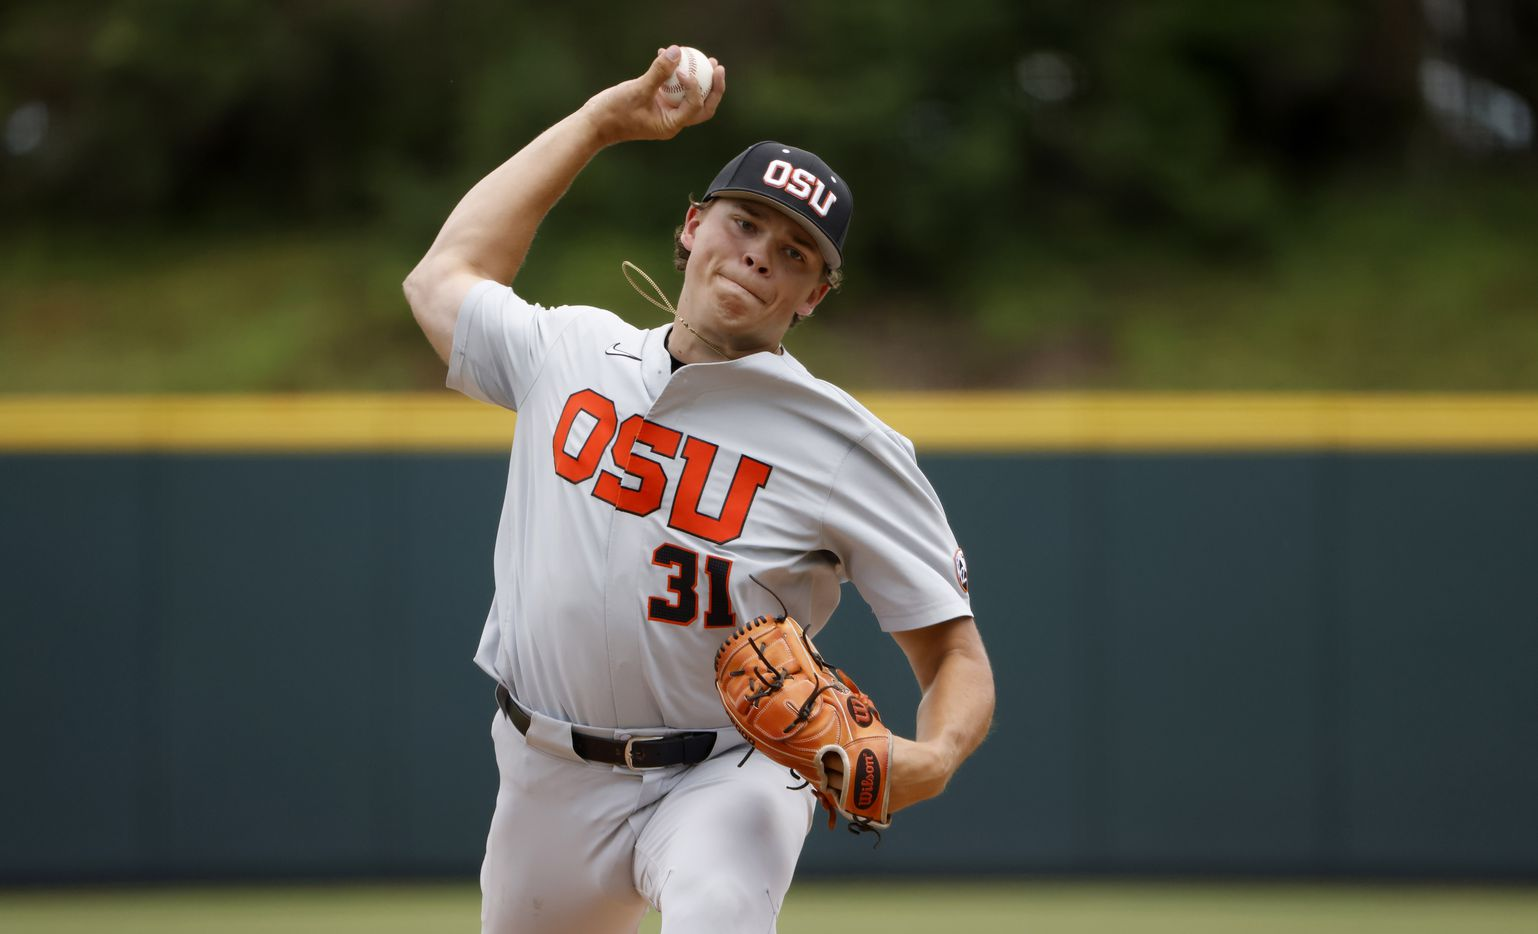 Oregon St. pitcher Jack Washburn (31) delivers against Dallas Baptist in the first inning during the NCAA Division I Baseball Regional Championship game in Fort Worth, Texas on June 7, 2021. (Ron Jenkins/Special Contributor)